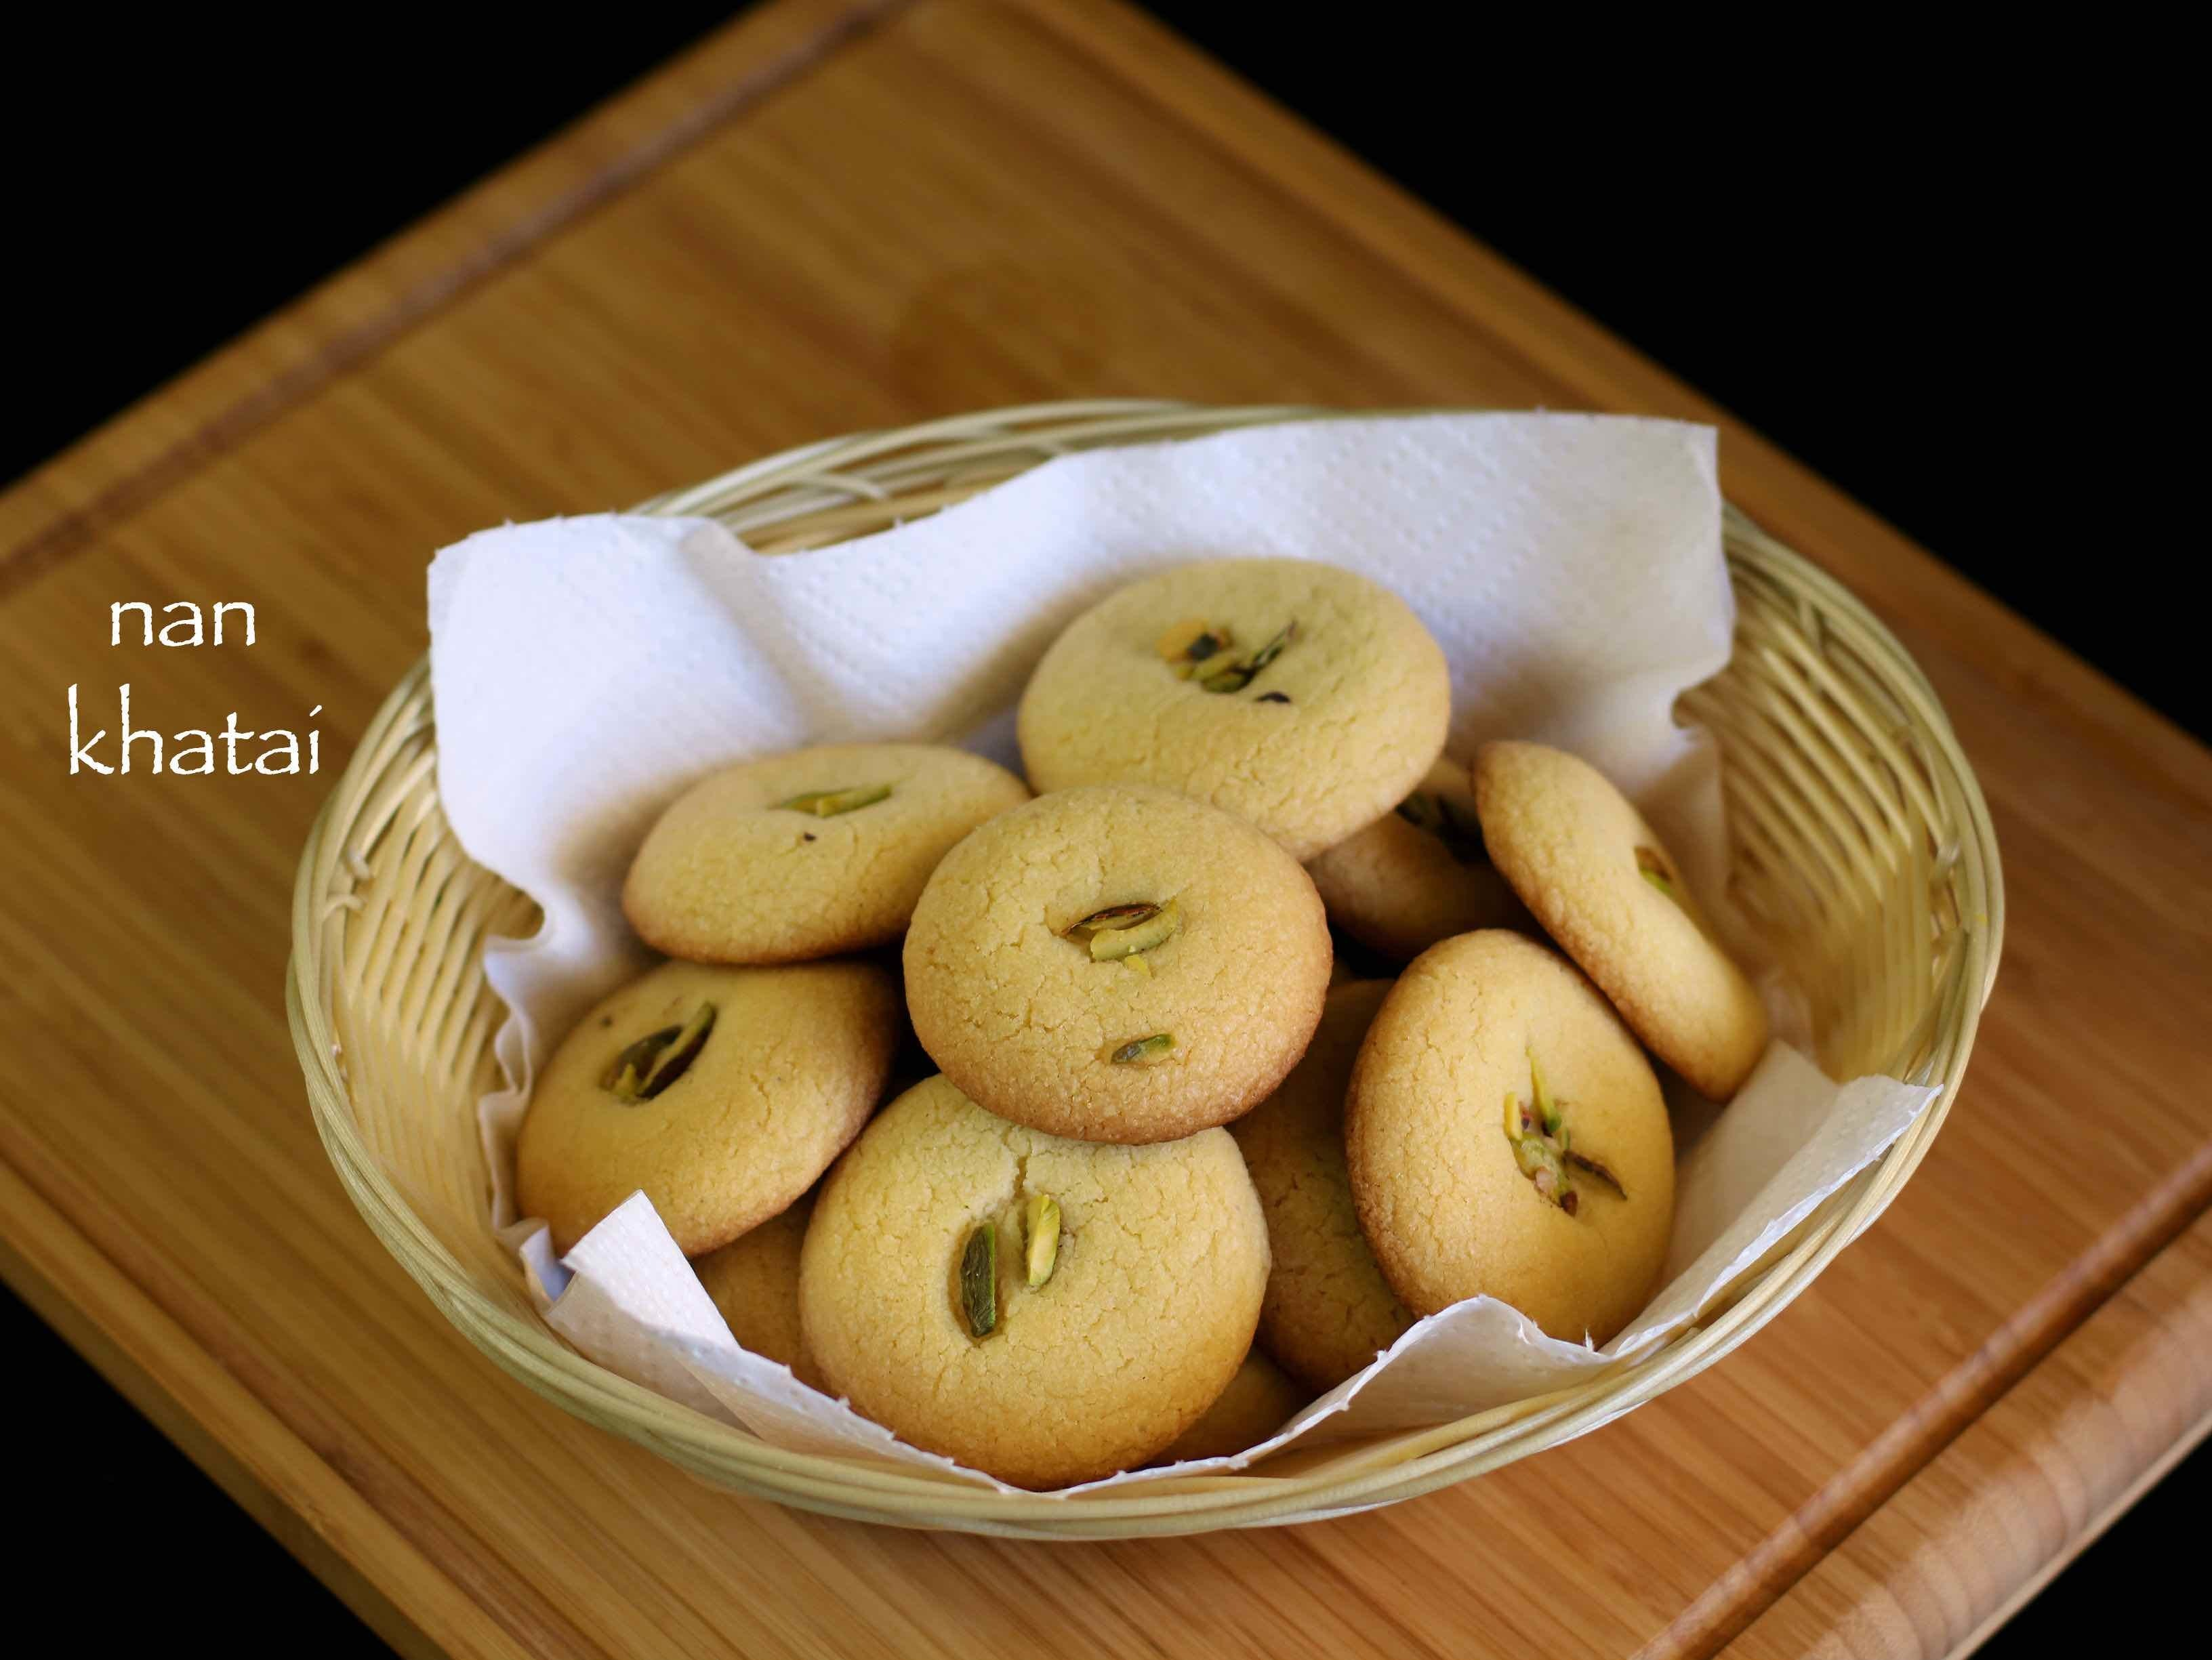 nankhatai recipe | nan khatai biscuits recipe | indian cookies recipe